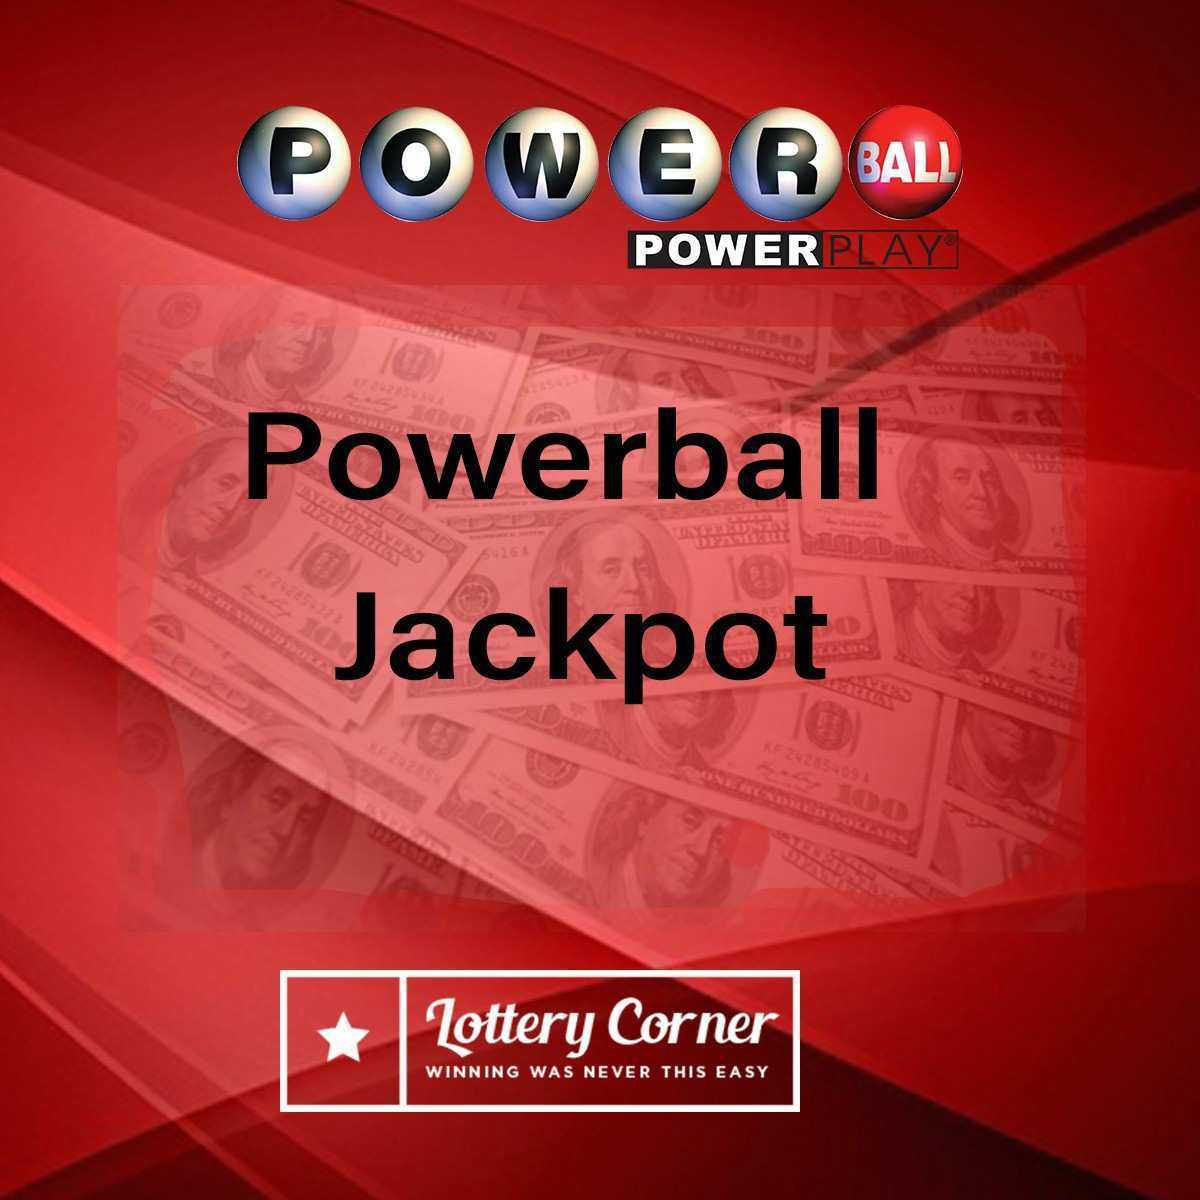 Powerball lottery odds and prizes